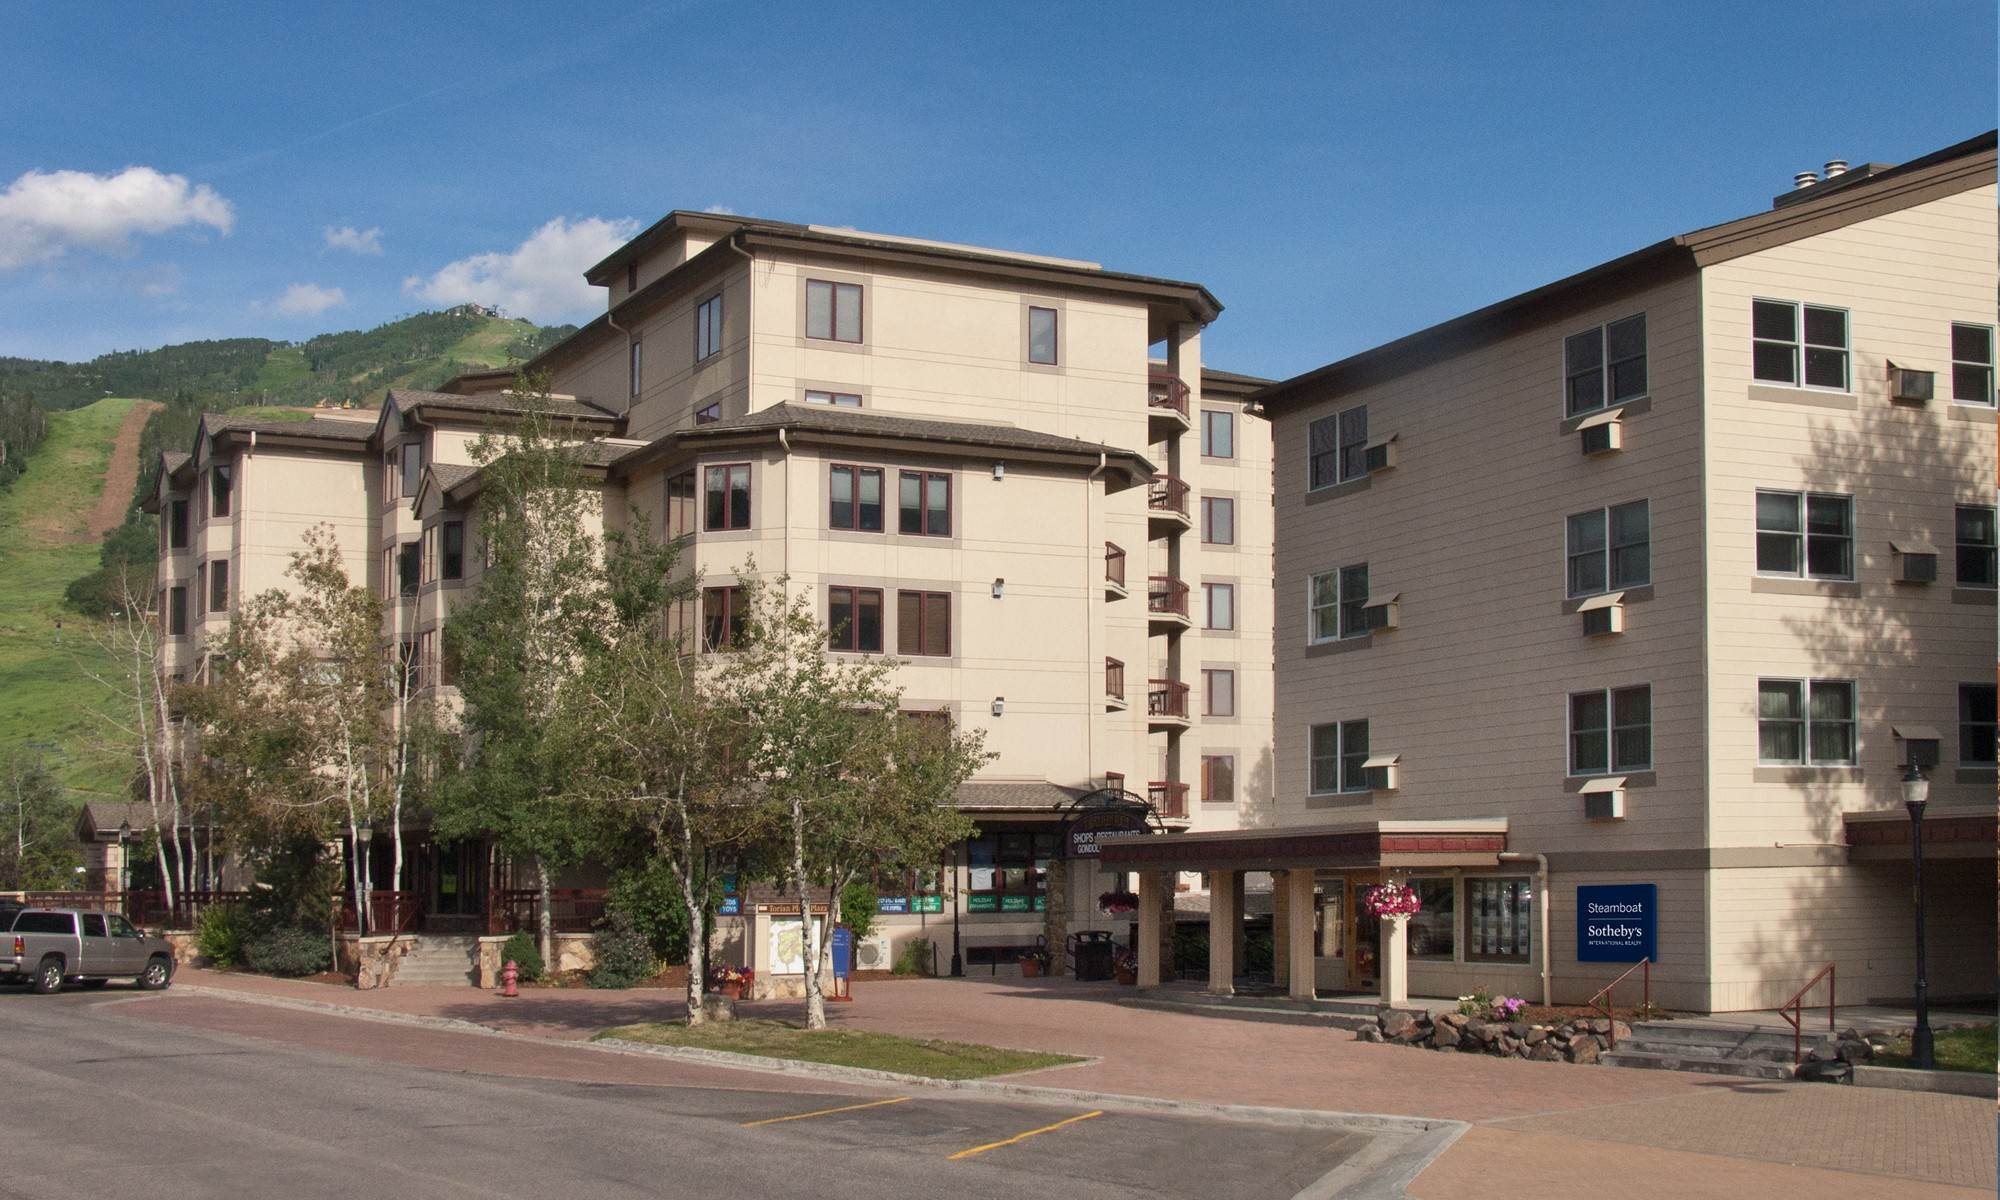 Steamboat Sotheby's International Realty - Mountain